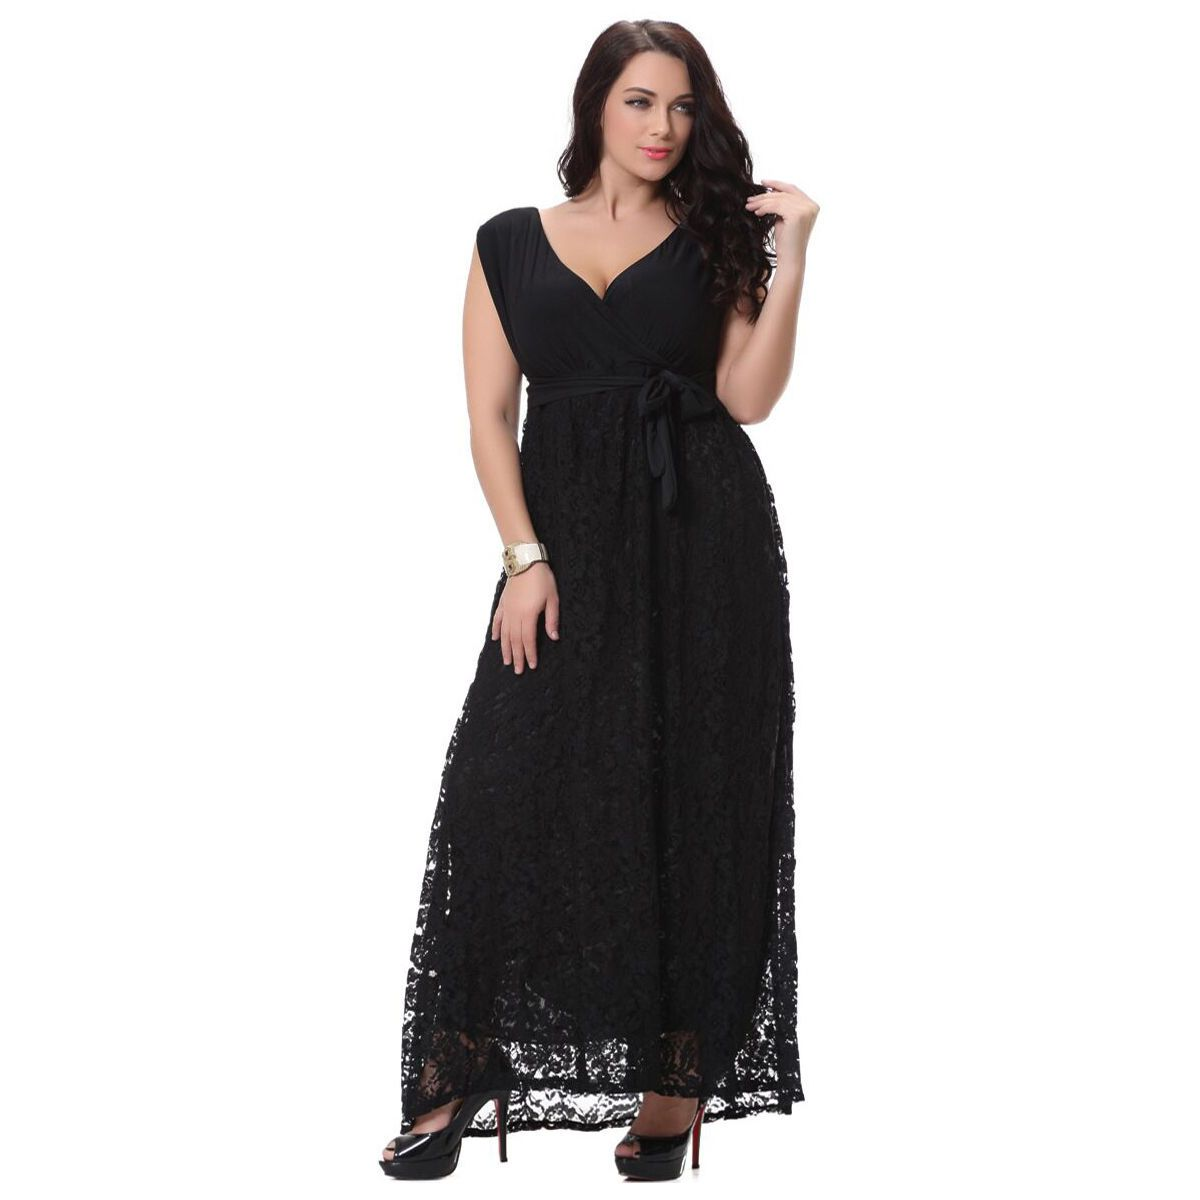 Womenus lace cocktail party wedding prom long dress maxi gown plus